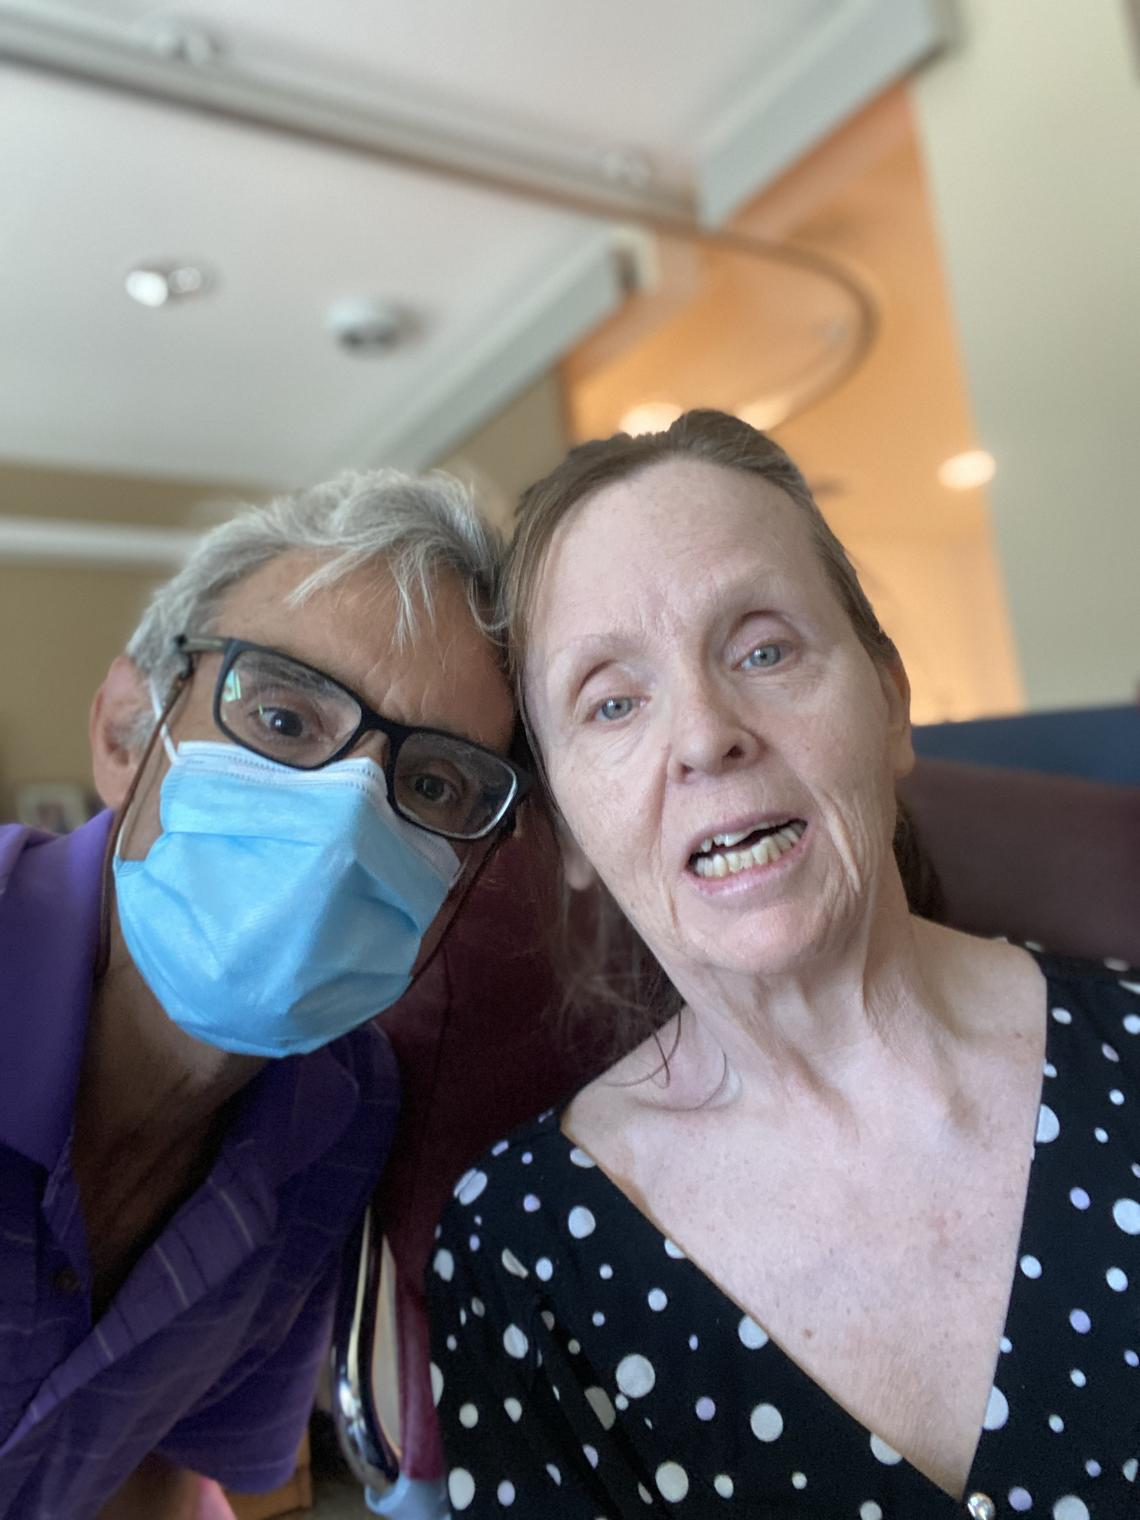 Daniel, wearing a face mask, poses next to his wife Janet who lives in a long term care facility